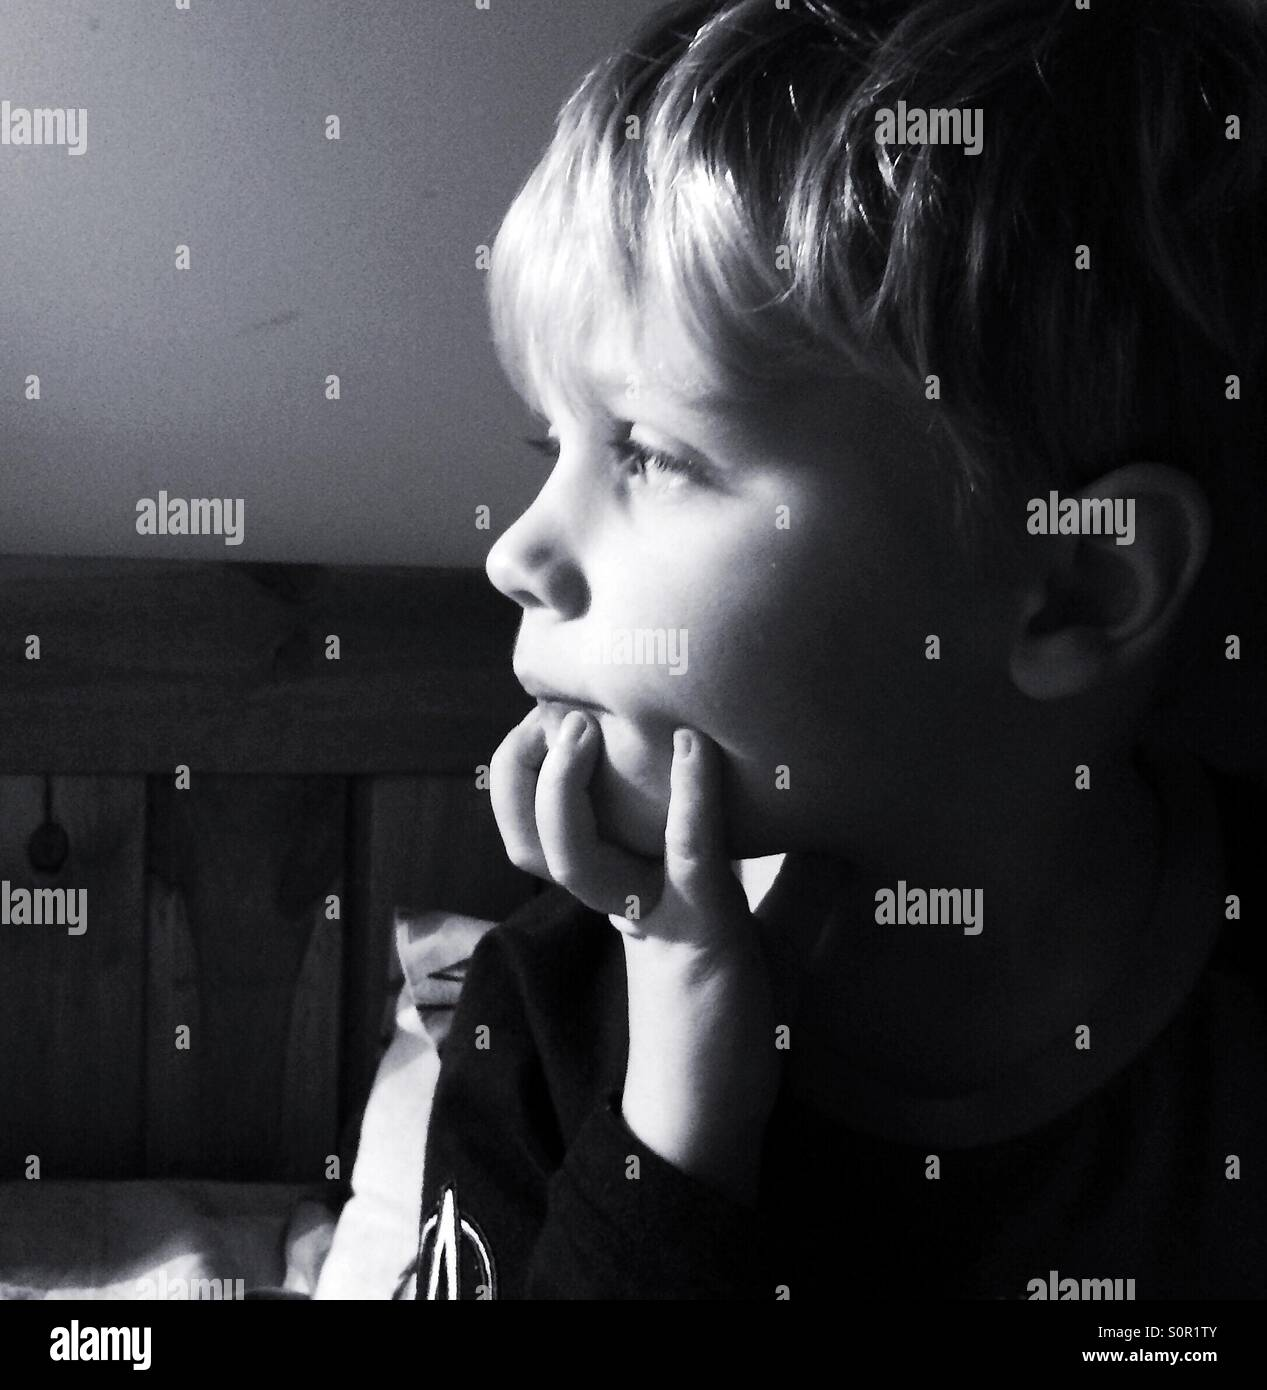 Bored child - Stock Image